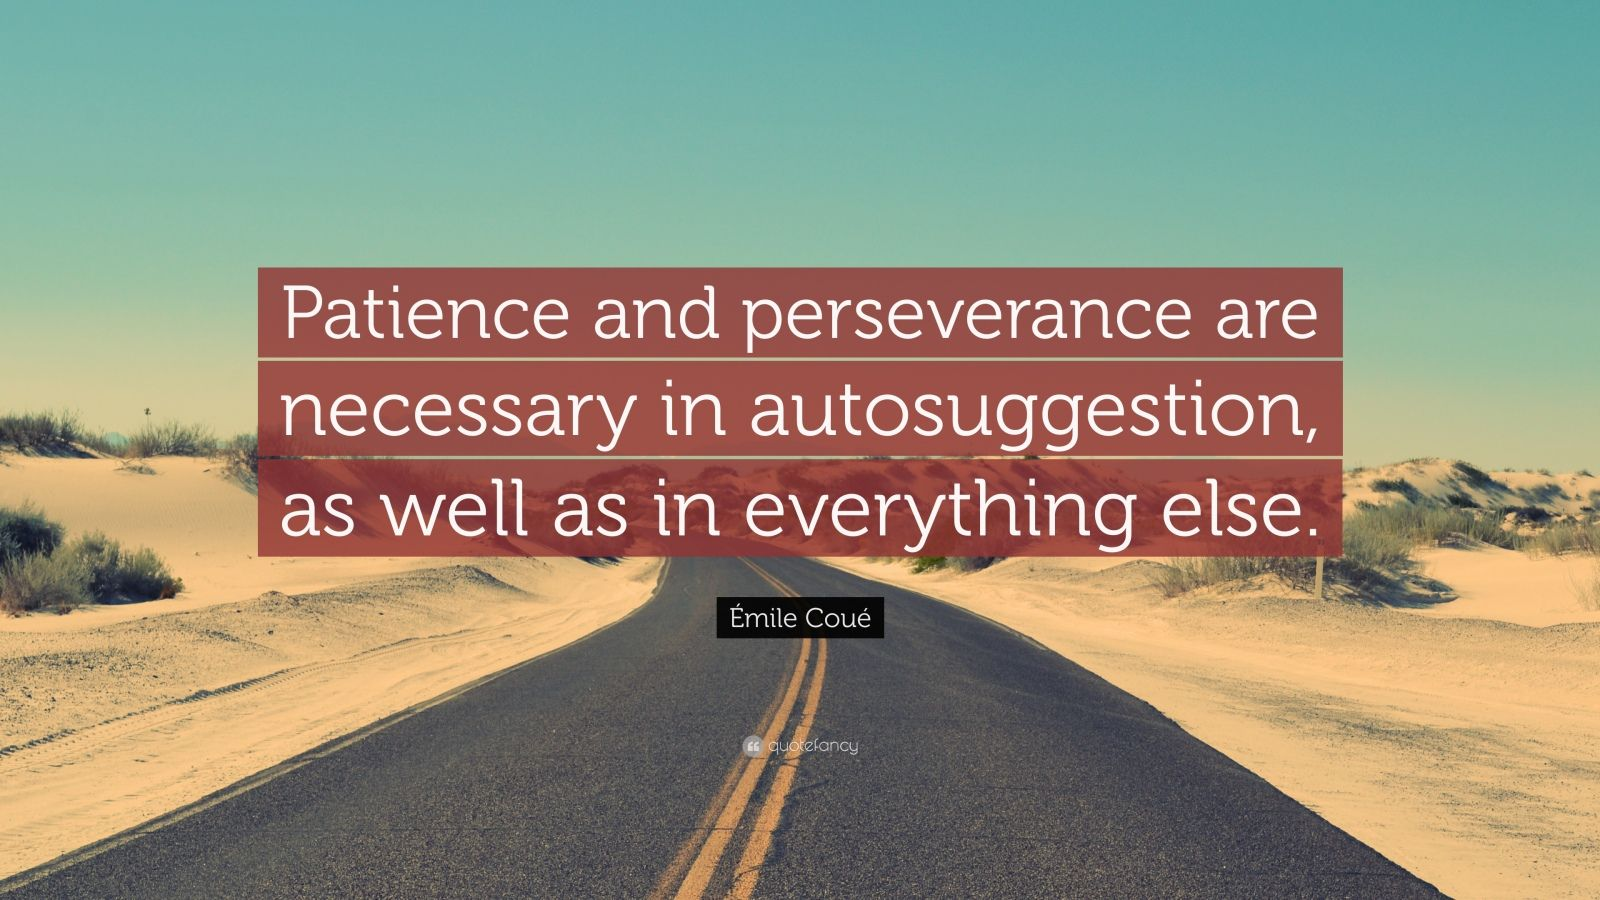 essay on purity patience and perseverance Essay on perseverance - professional research paper writing help 8 elements of or persevering to this essay on patience and perseverance enables an individual to.